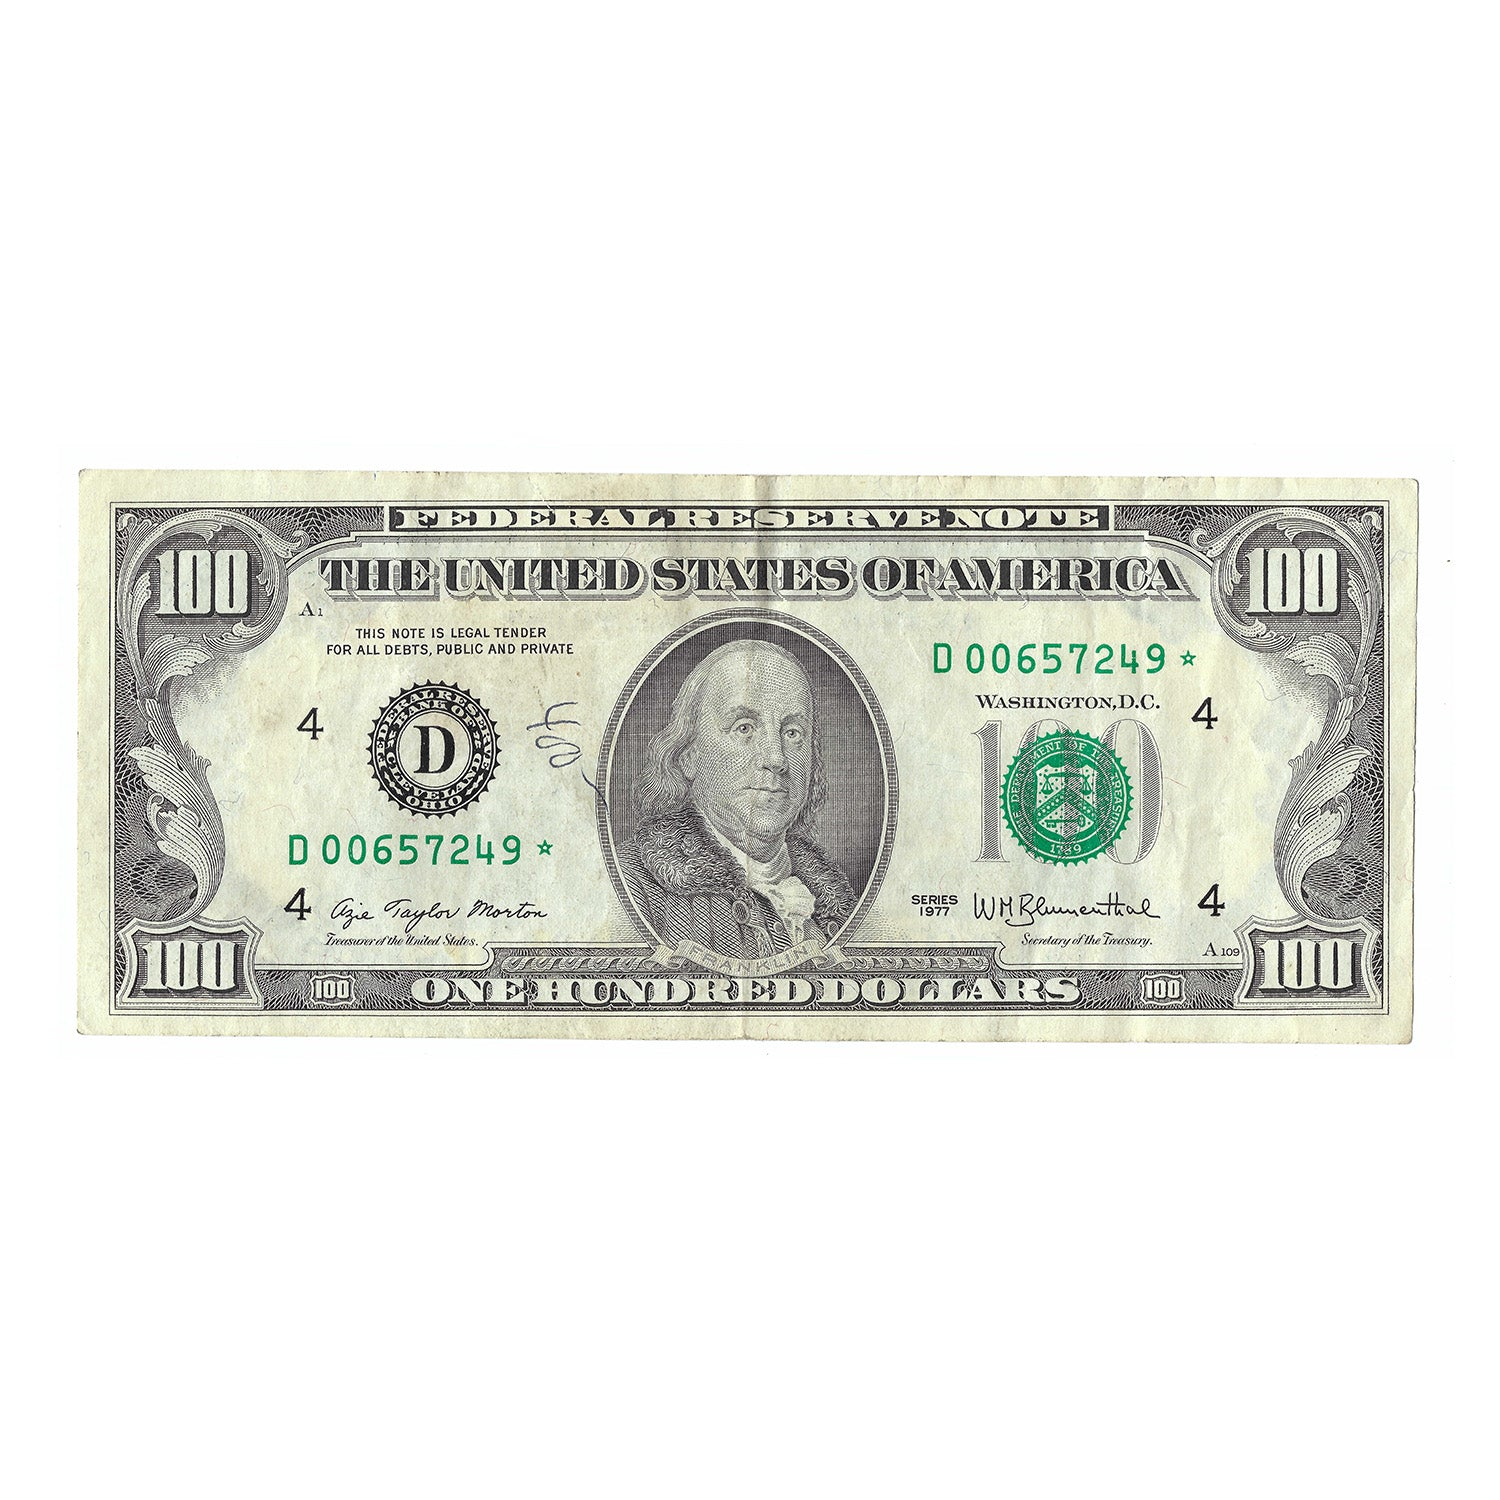 1977 $100 Small Size Federal Reserve Note, Morton-Blumenthal Circulated